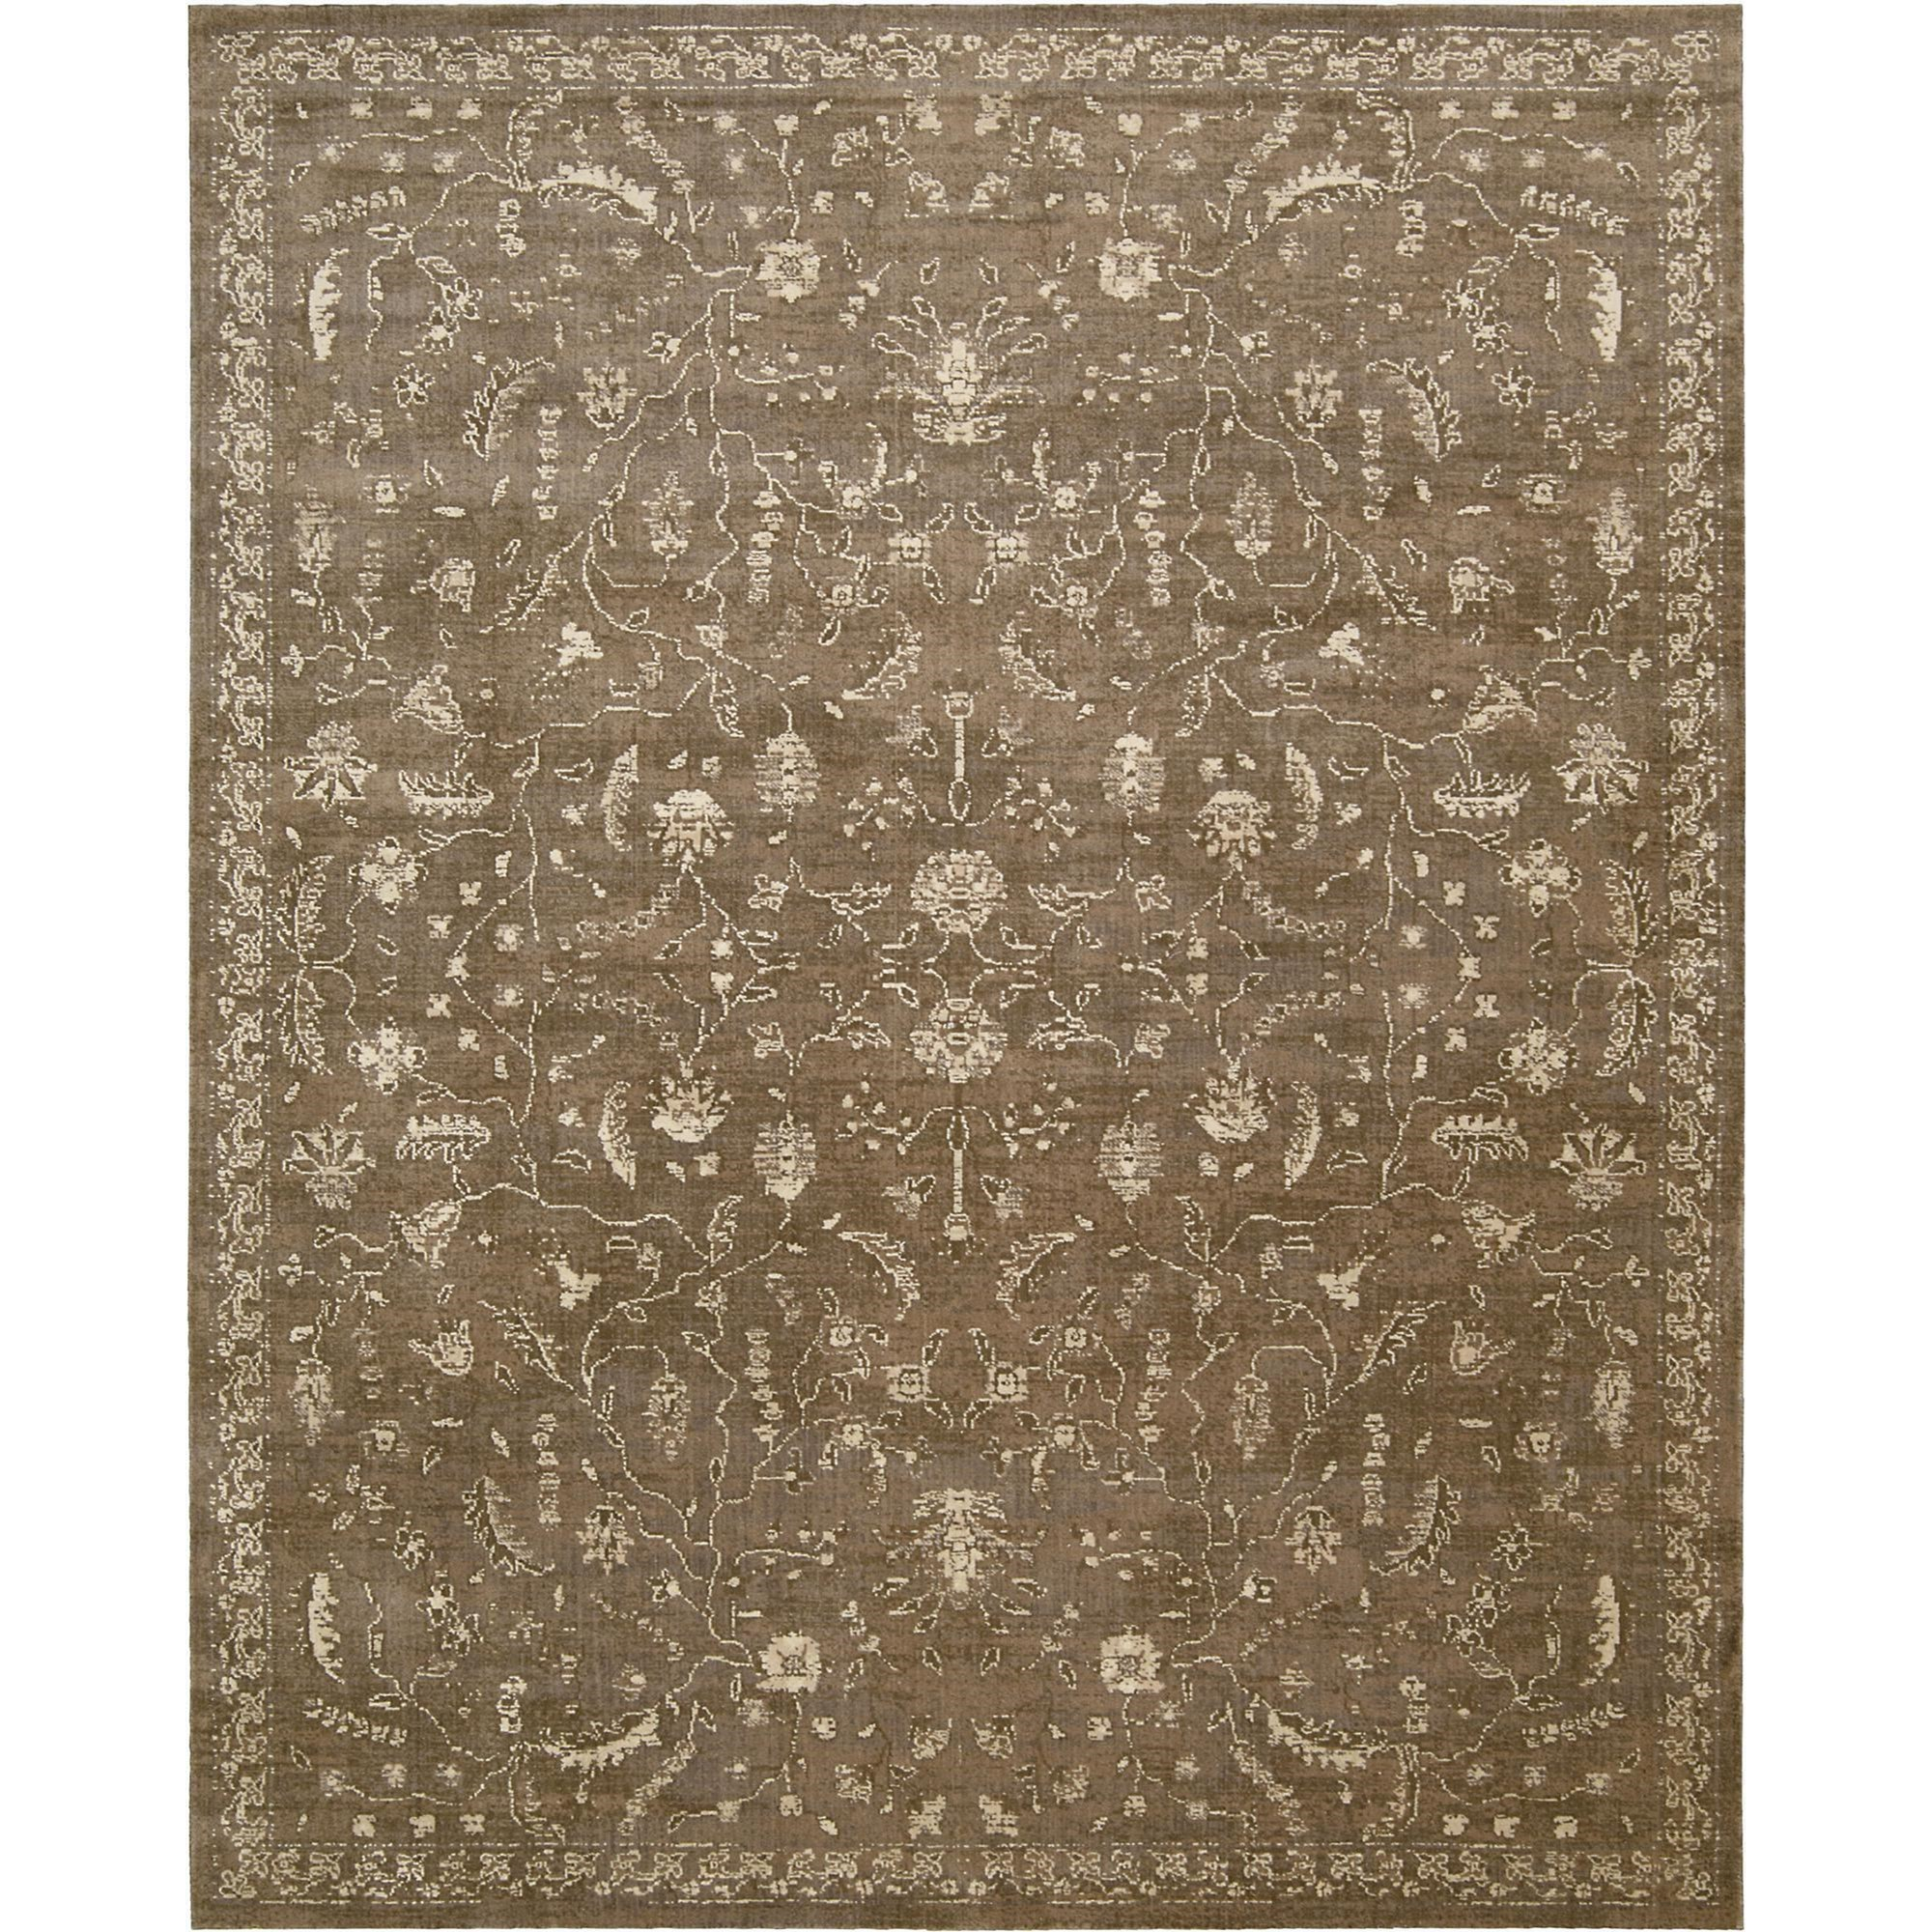 """Nourison Silk Elements 8'6"""" x 11'6"""" Cocoa Area Rug - Item Number: 18925"""